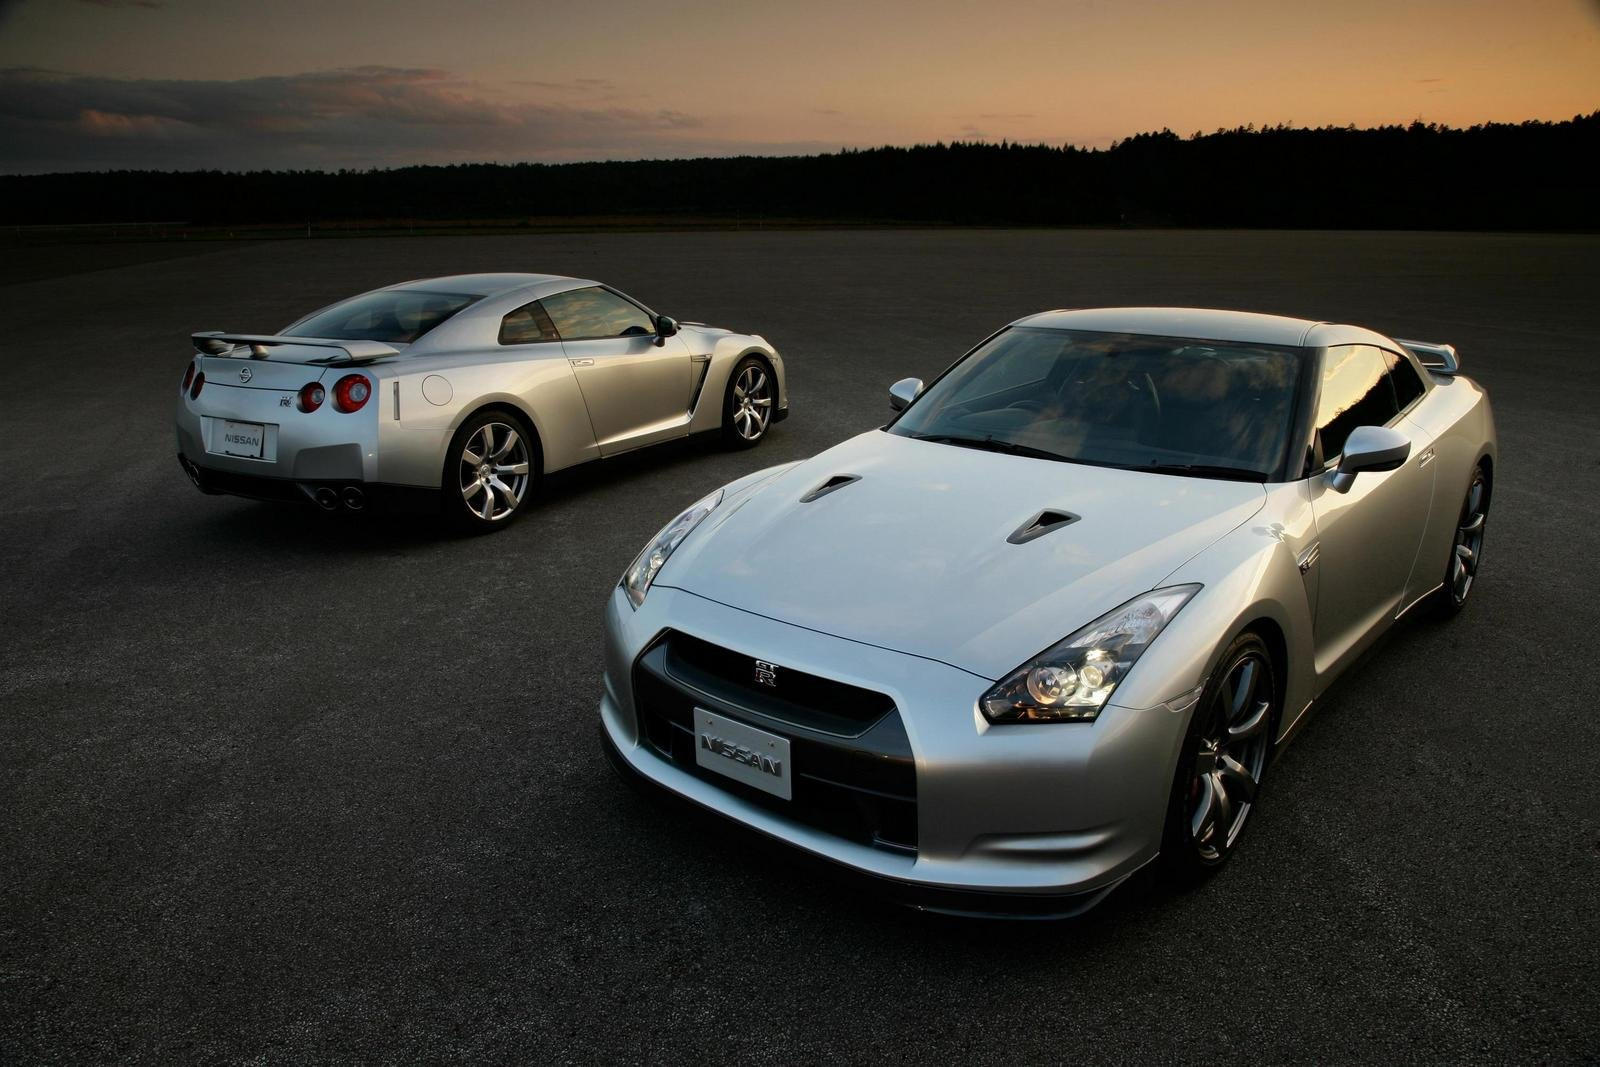 The Nissan GT-R Is A Dream Car You Can Now Afford